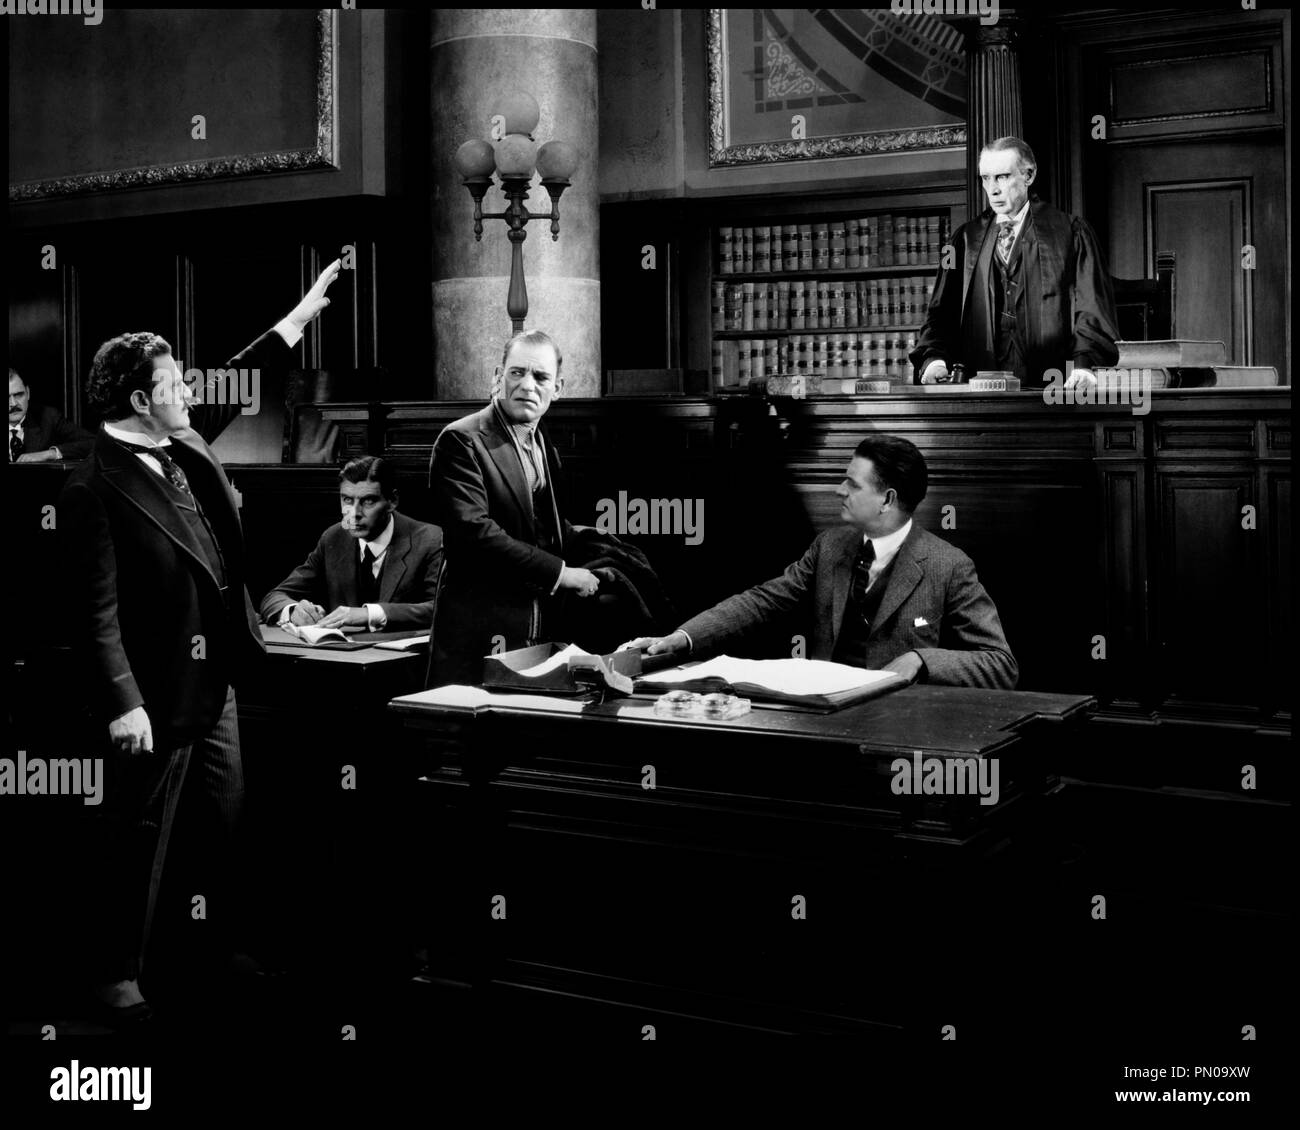 Prod DB © MGM / DR LE CLUB DES TROIS (THE UNHOLY THREE) de Tod Browning 1925 USA avec Lon Chaney William Humphrey et Edward Connelly tribunal, serment, jurer, juge code 217 - Stock Image